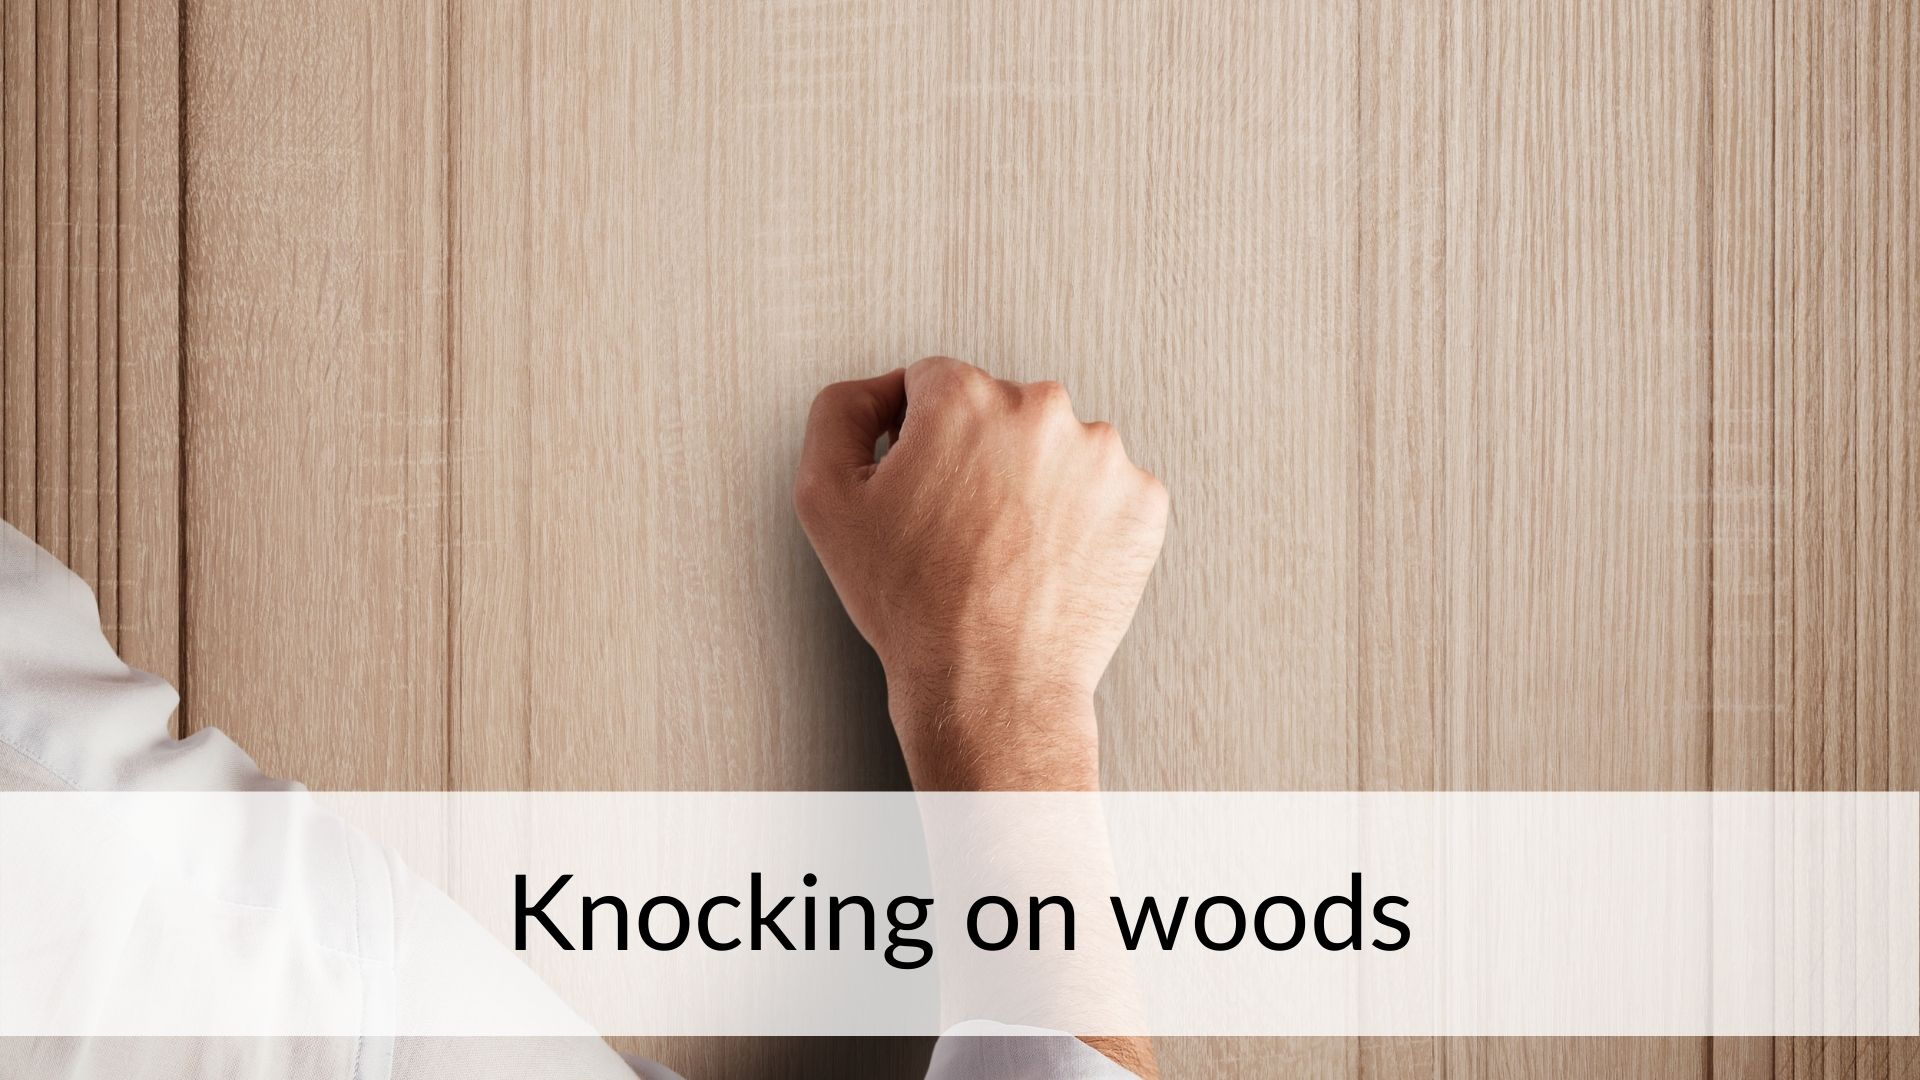 knocking on woods